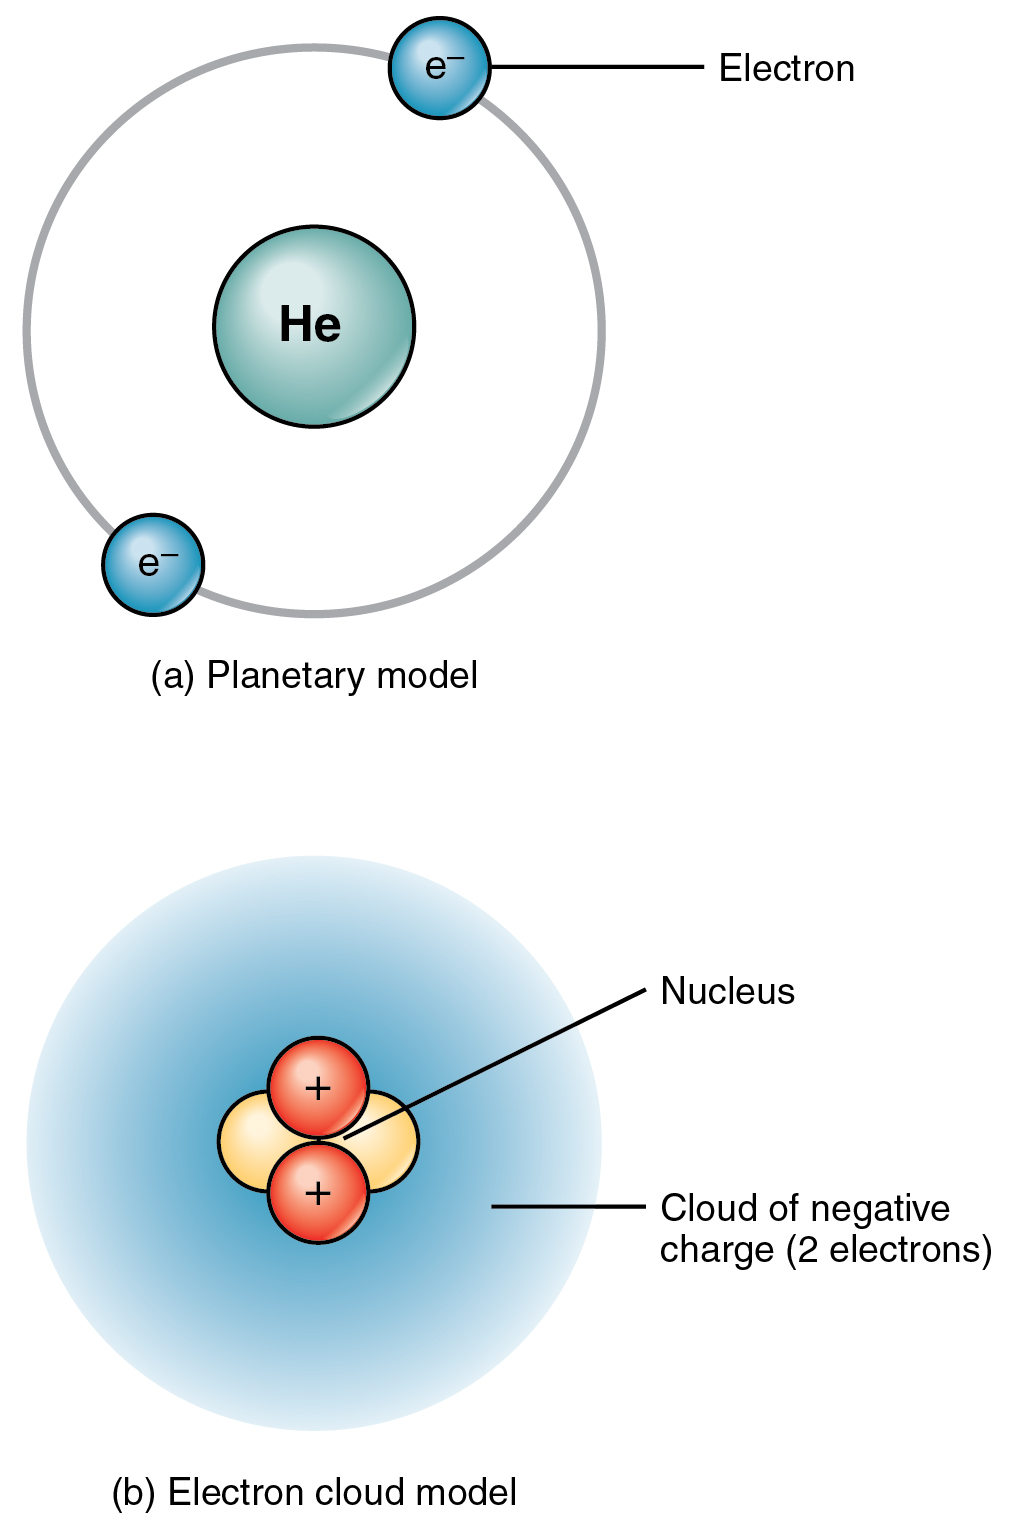 hight resolution of the top panel of this figure shows two electrons orbiting around the nucleus of a helium